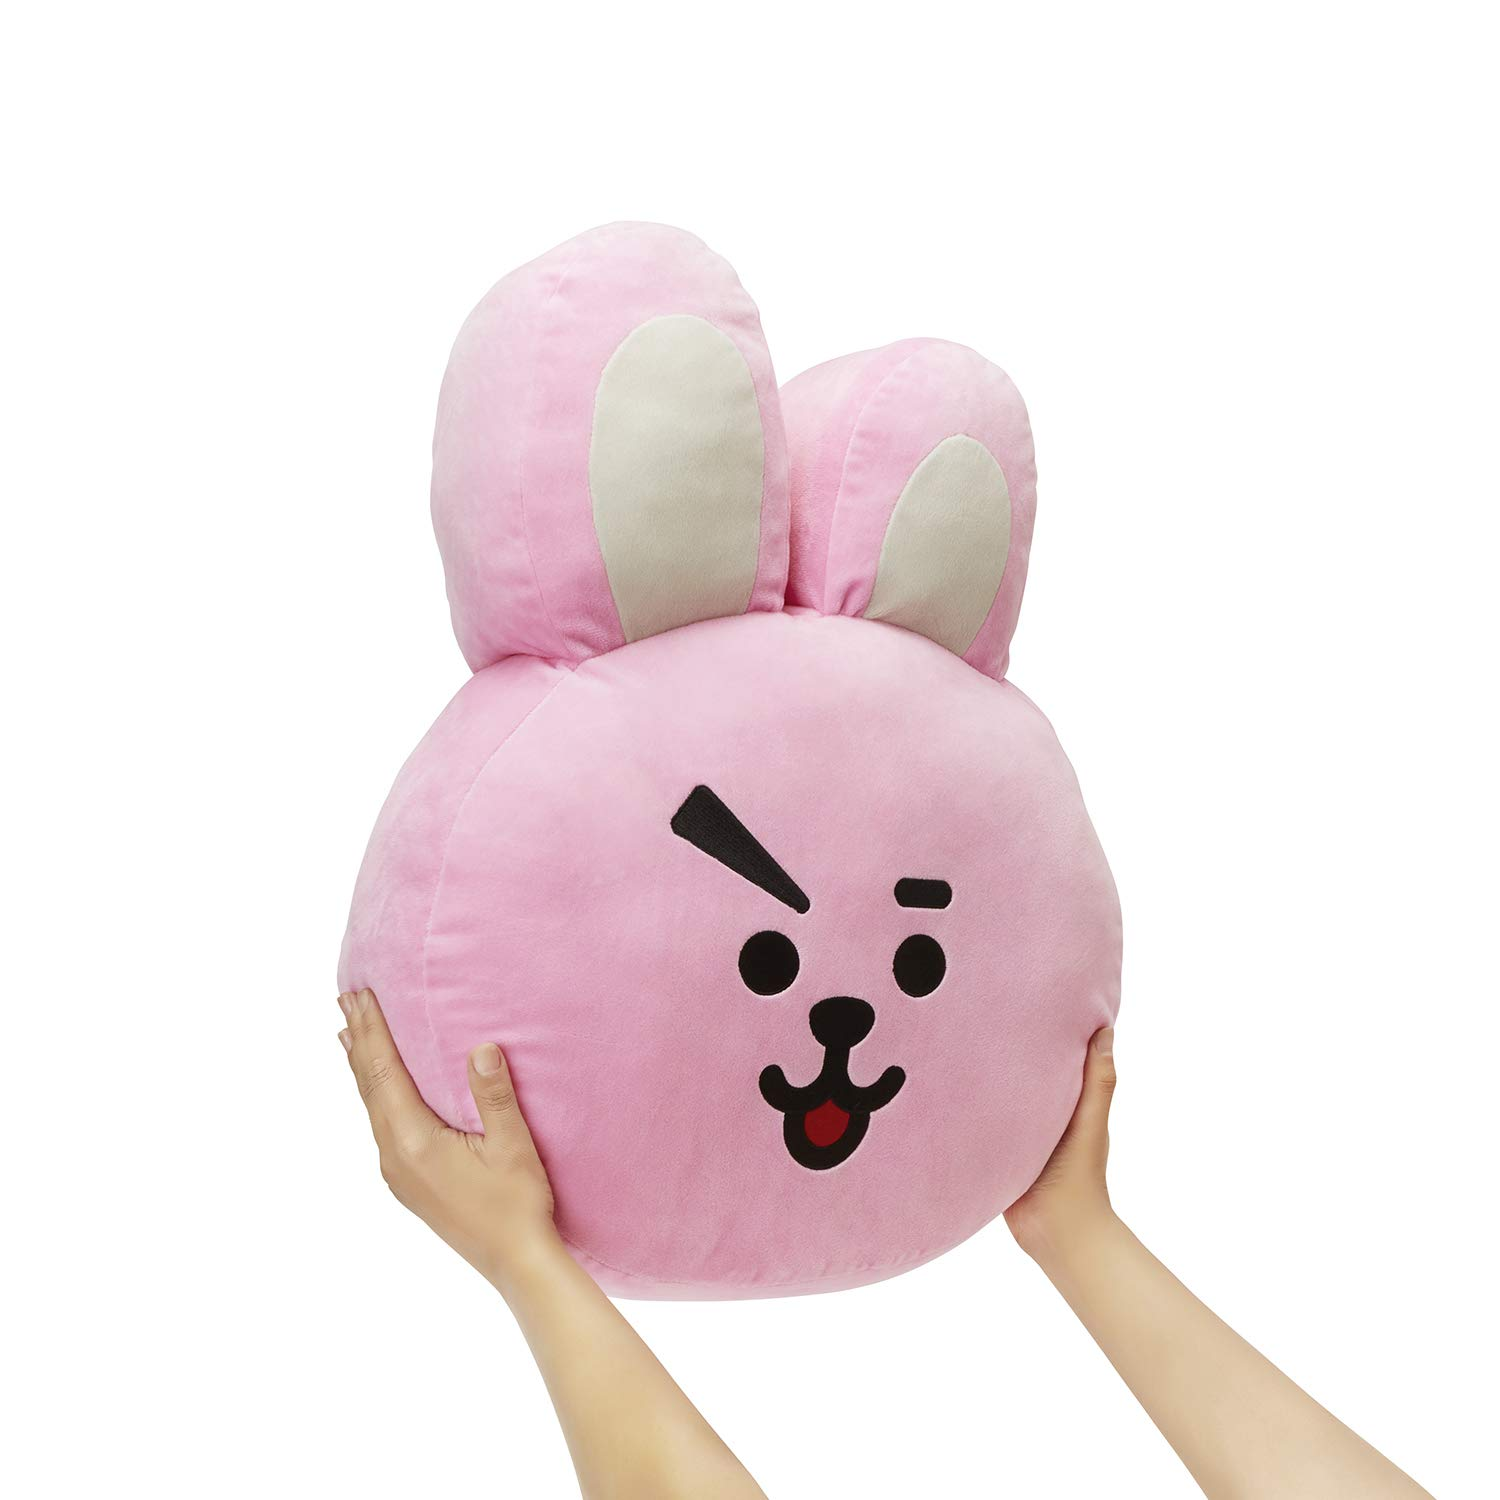 LINE FRIENDS BT21 Official Merchandise Cooky Smile Decorative Throw Pillows Cushion, 11 Inch by LINE FRIENDS (Image #6)